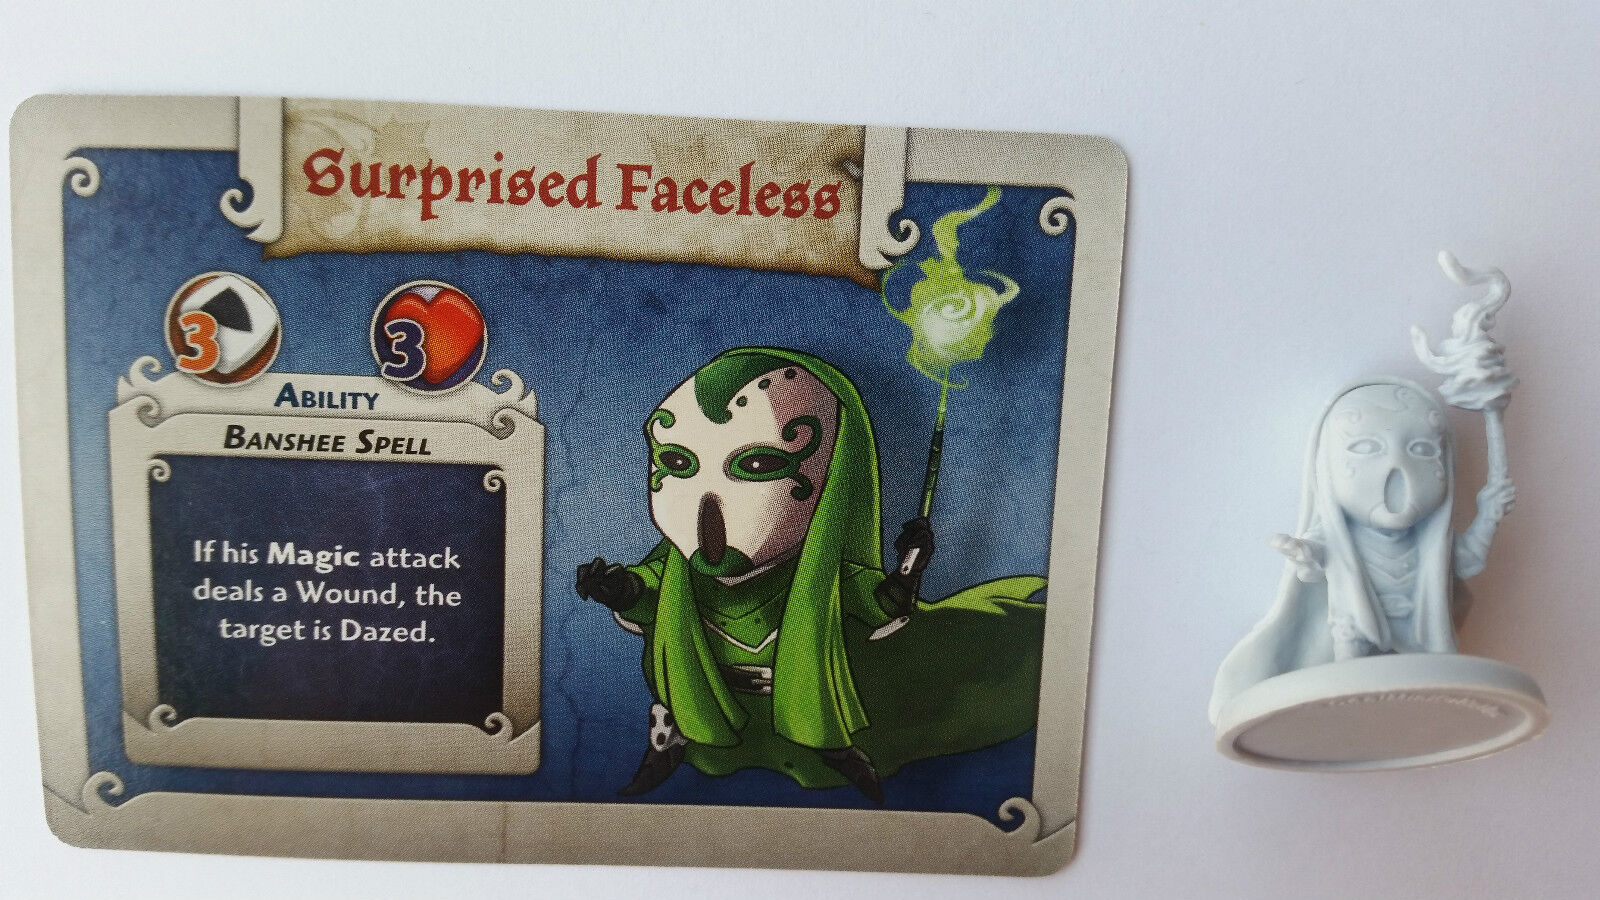 Arcadia quest promo morning Faceless, very difficult to get